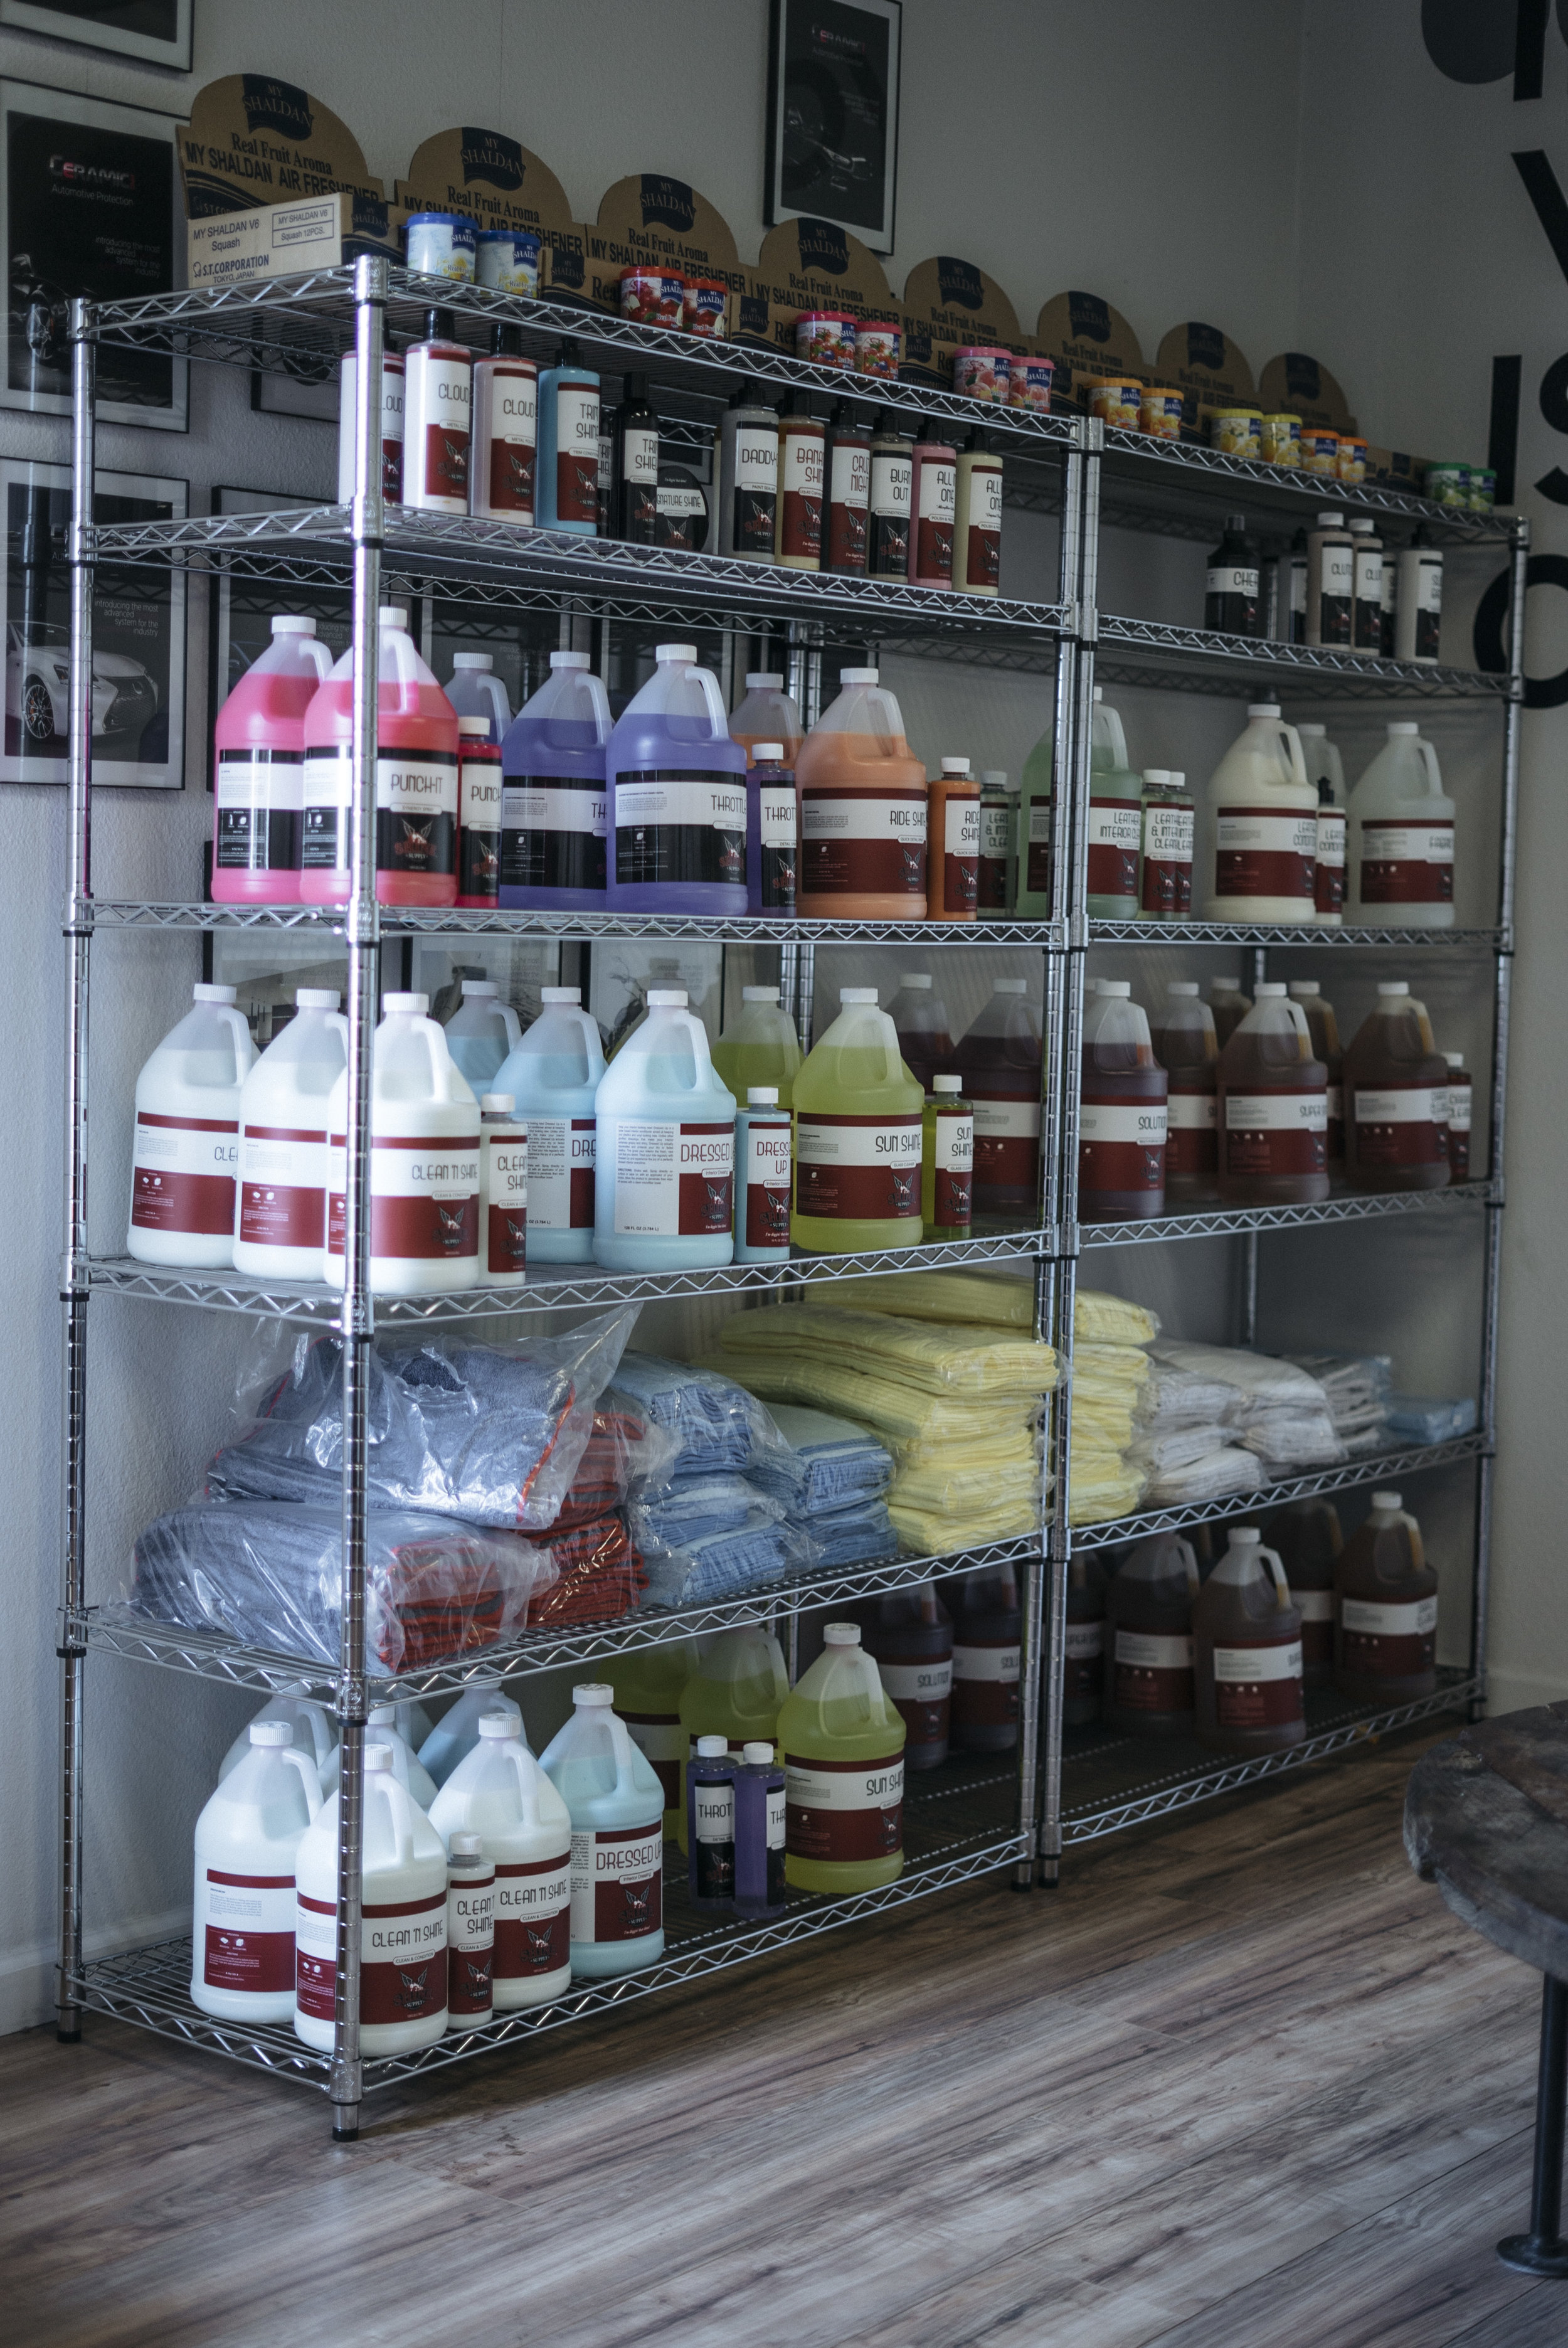 DETAILING PRODUCTS - Our long search for the auto detailing industries most reliable products has resulted in a fully stocked store of none other than Shine Supply Co's wide range of interior and exterior auto care products.